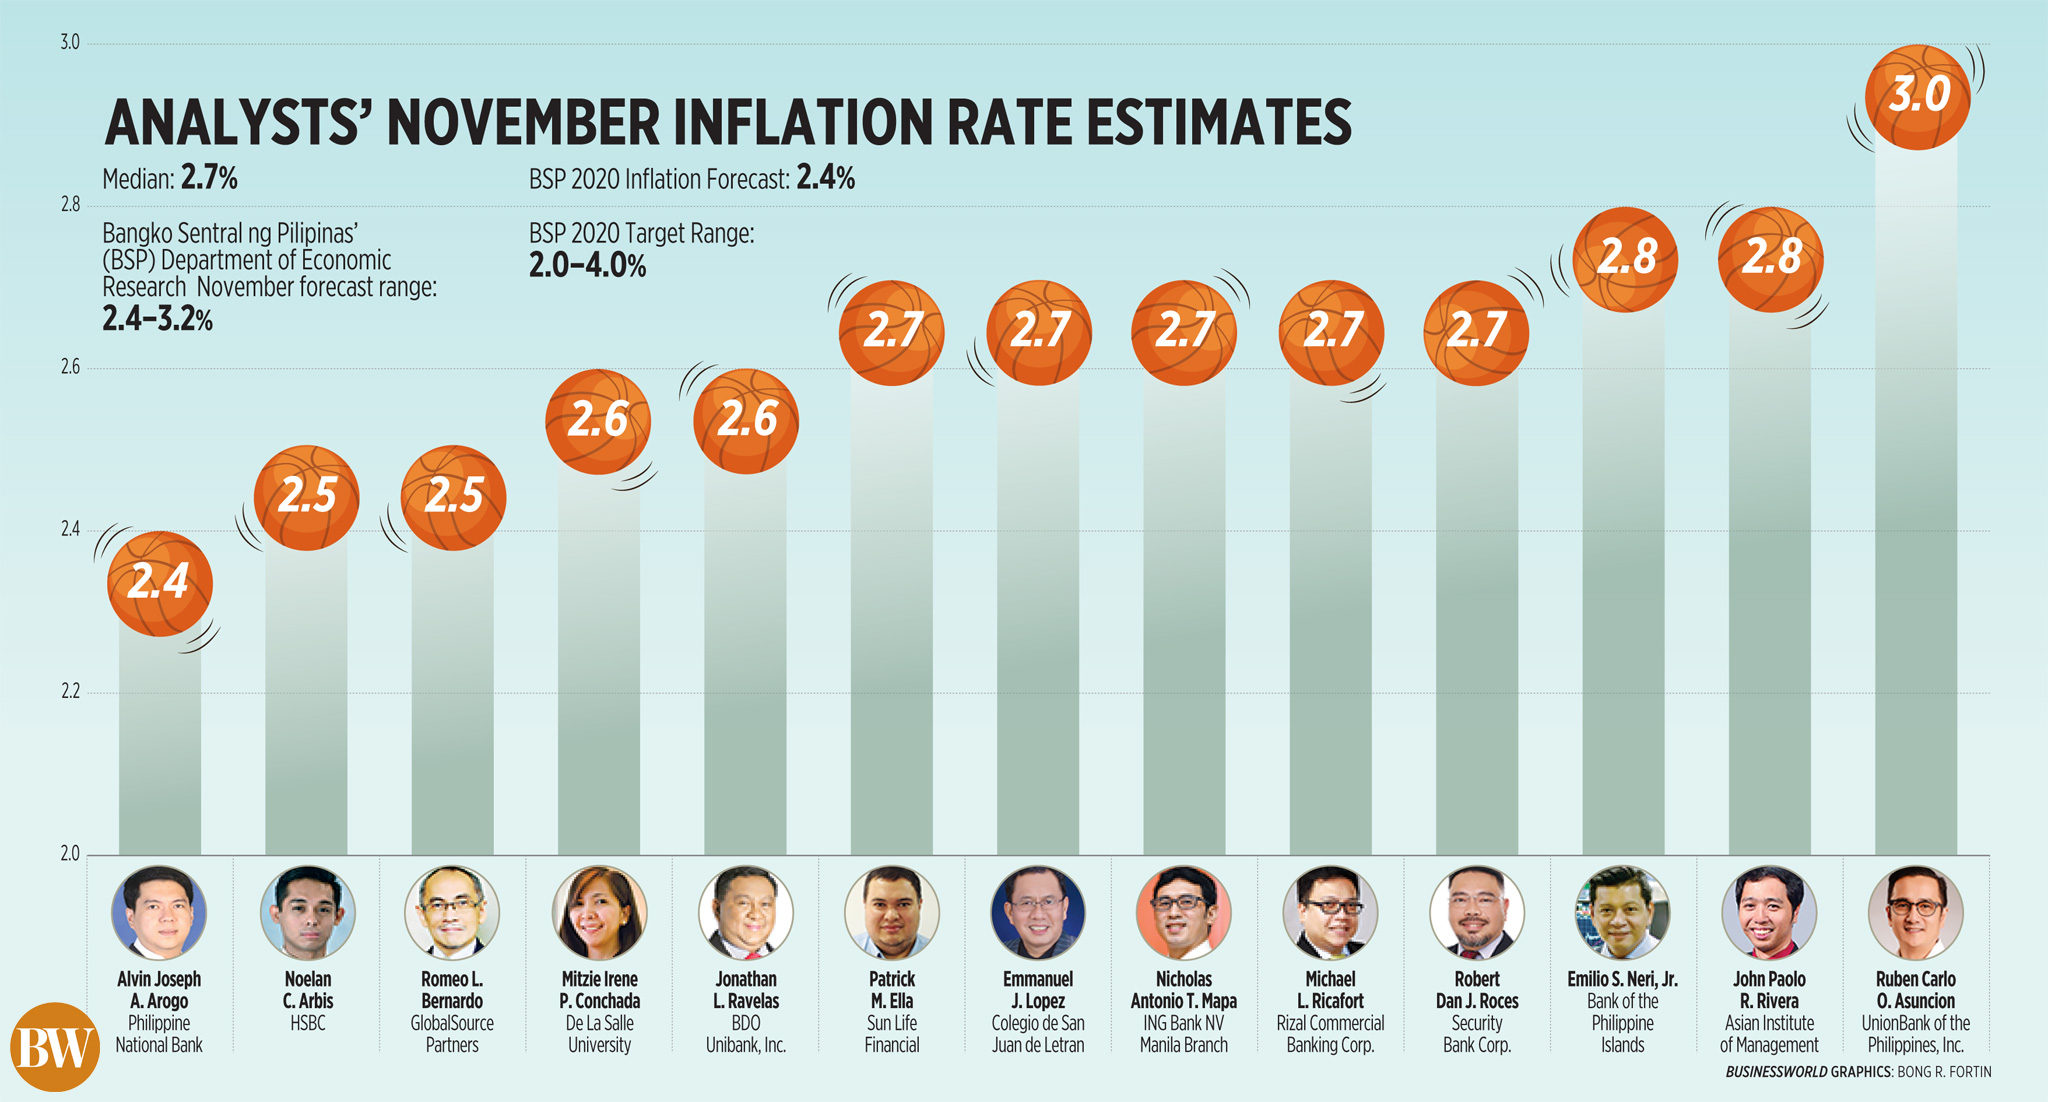 Analysts' November inflation rate estimates (2020)